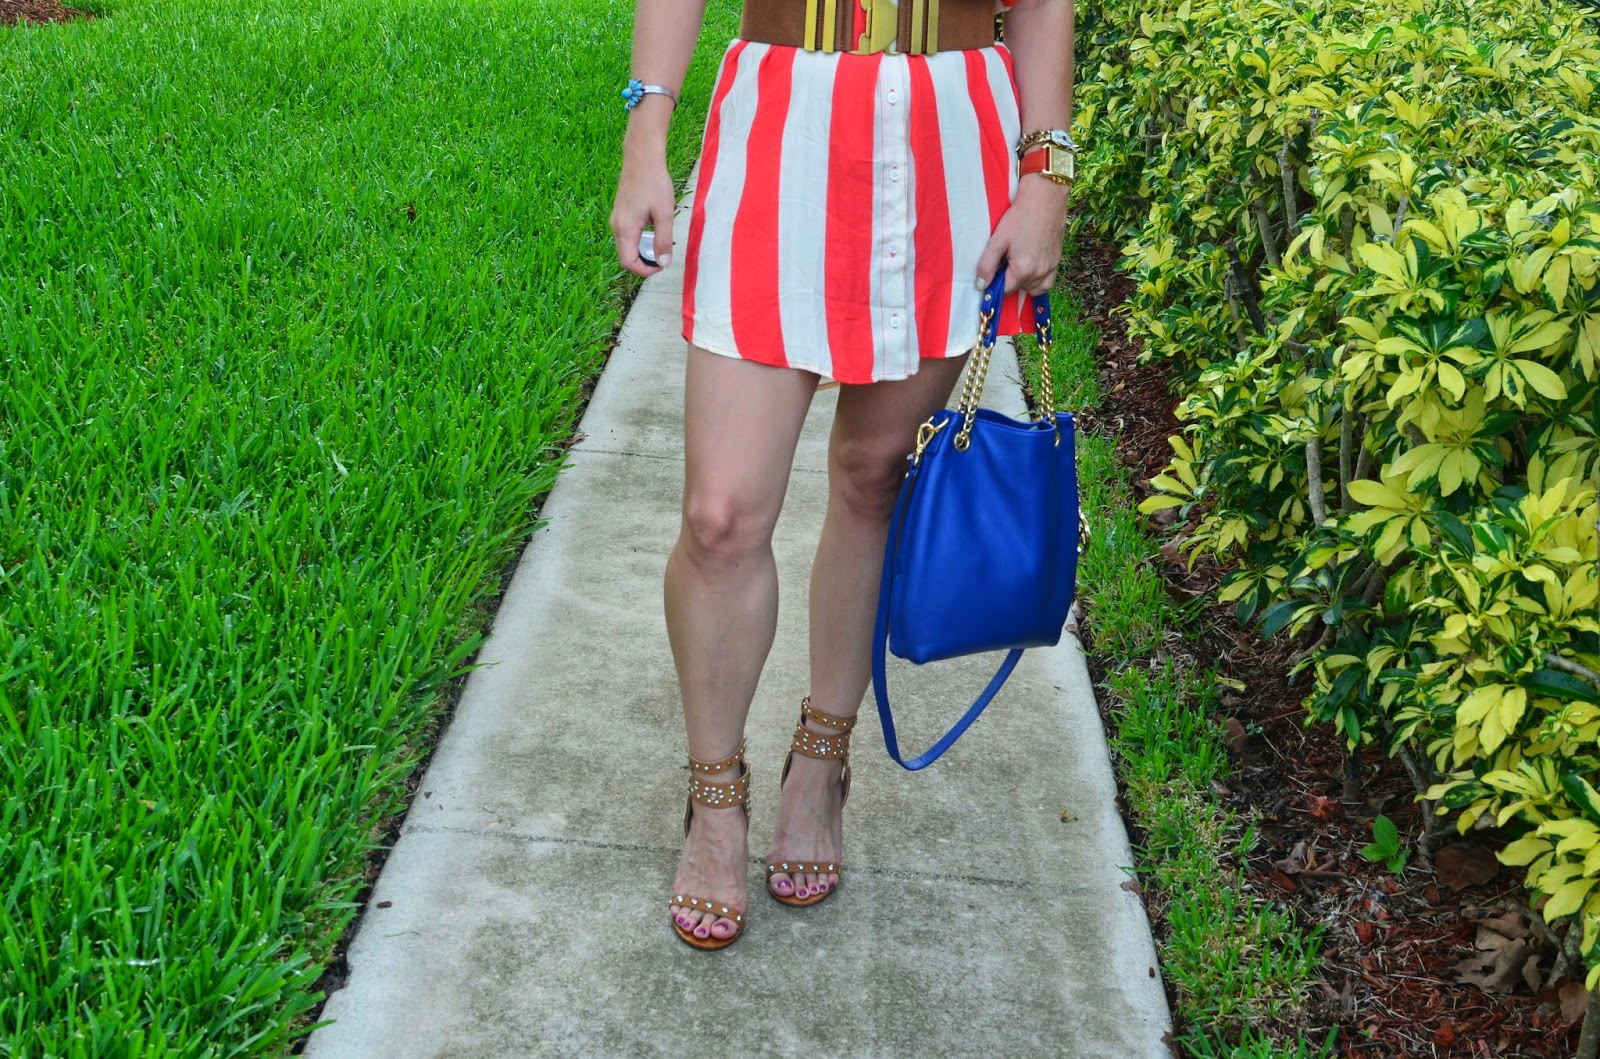 Shirt dress - Michael Kors bag - studded sandals - Steve Madden belt